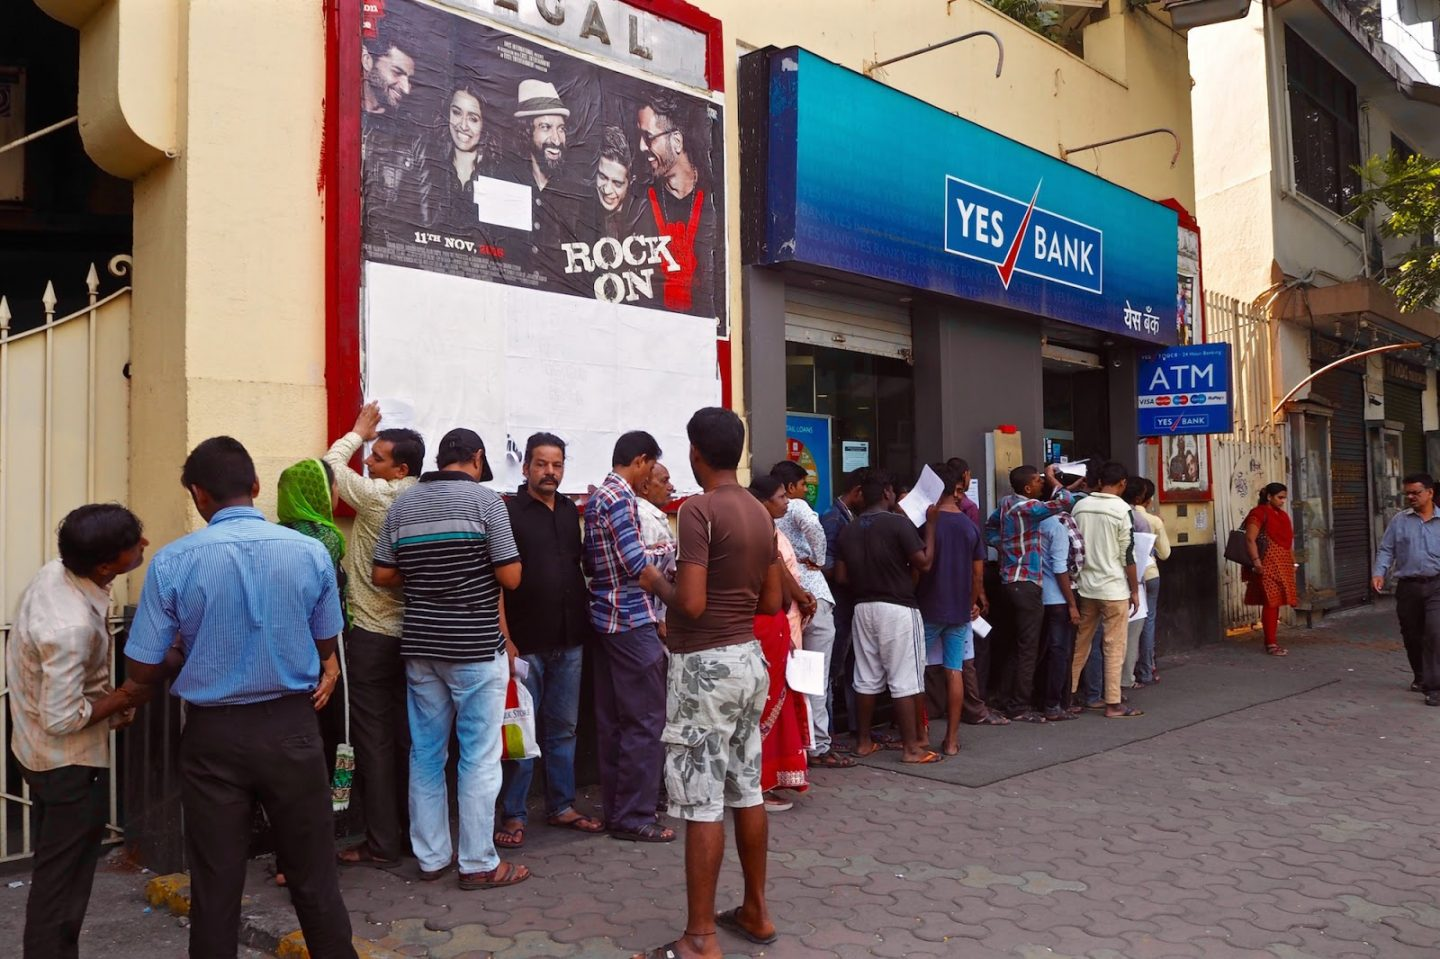 Mumbai ATM queues Indian demonetiastion